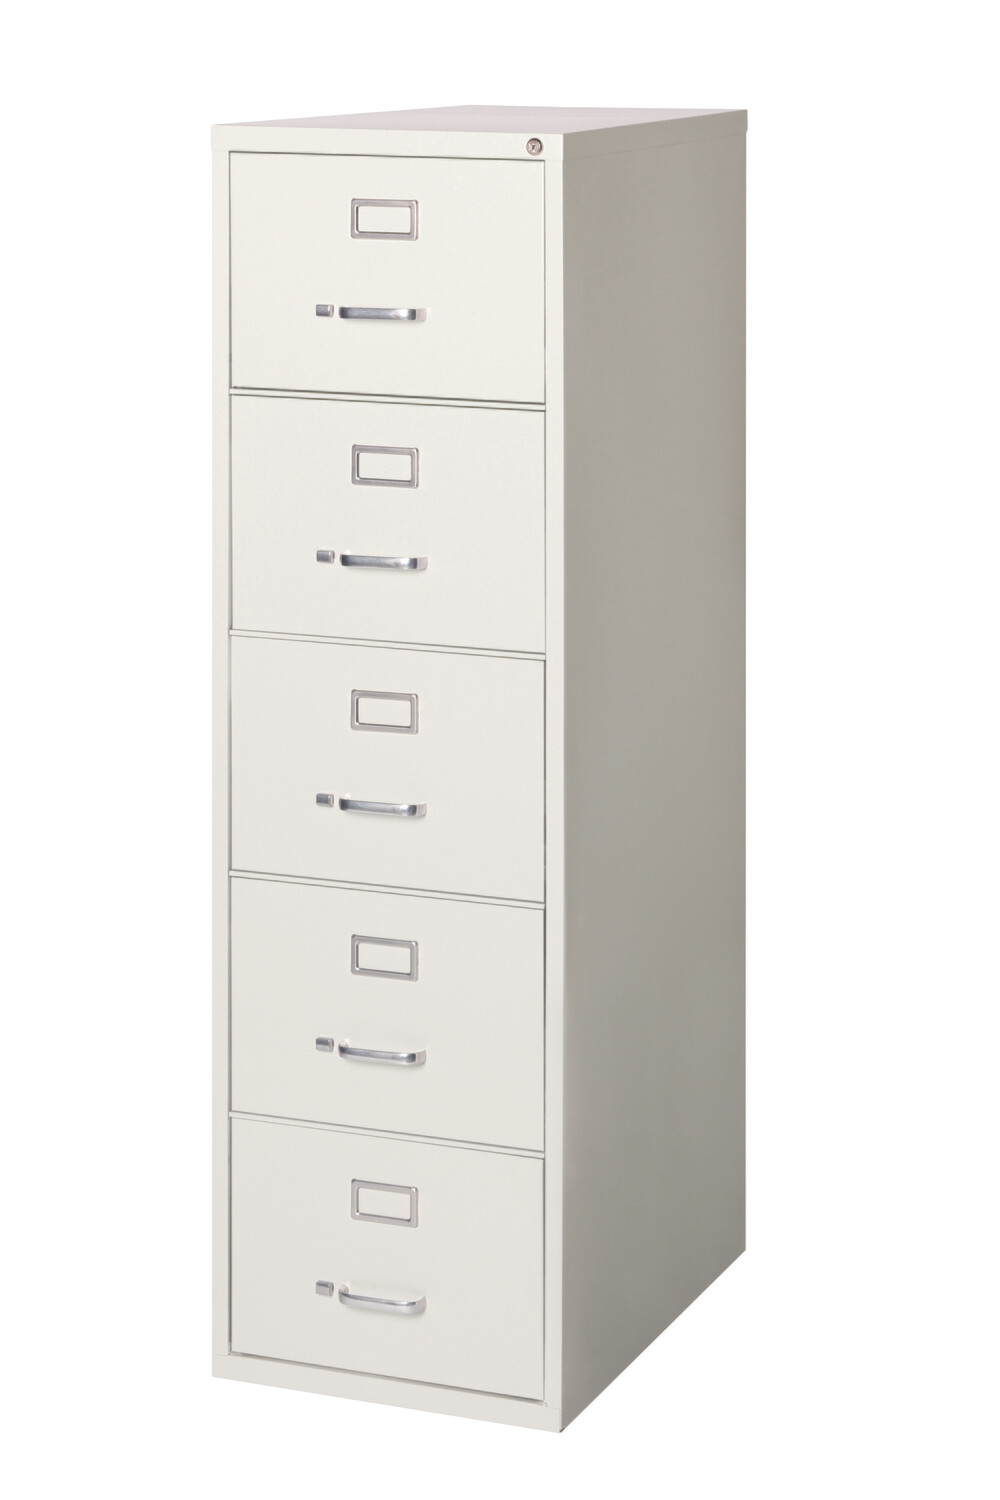 Vertical File Cabinet, 5-Drawer, LEGAL, Gray